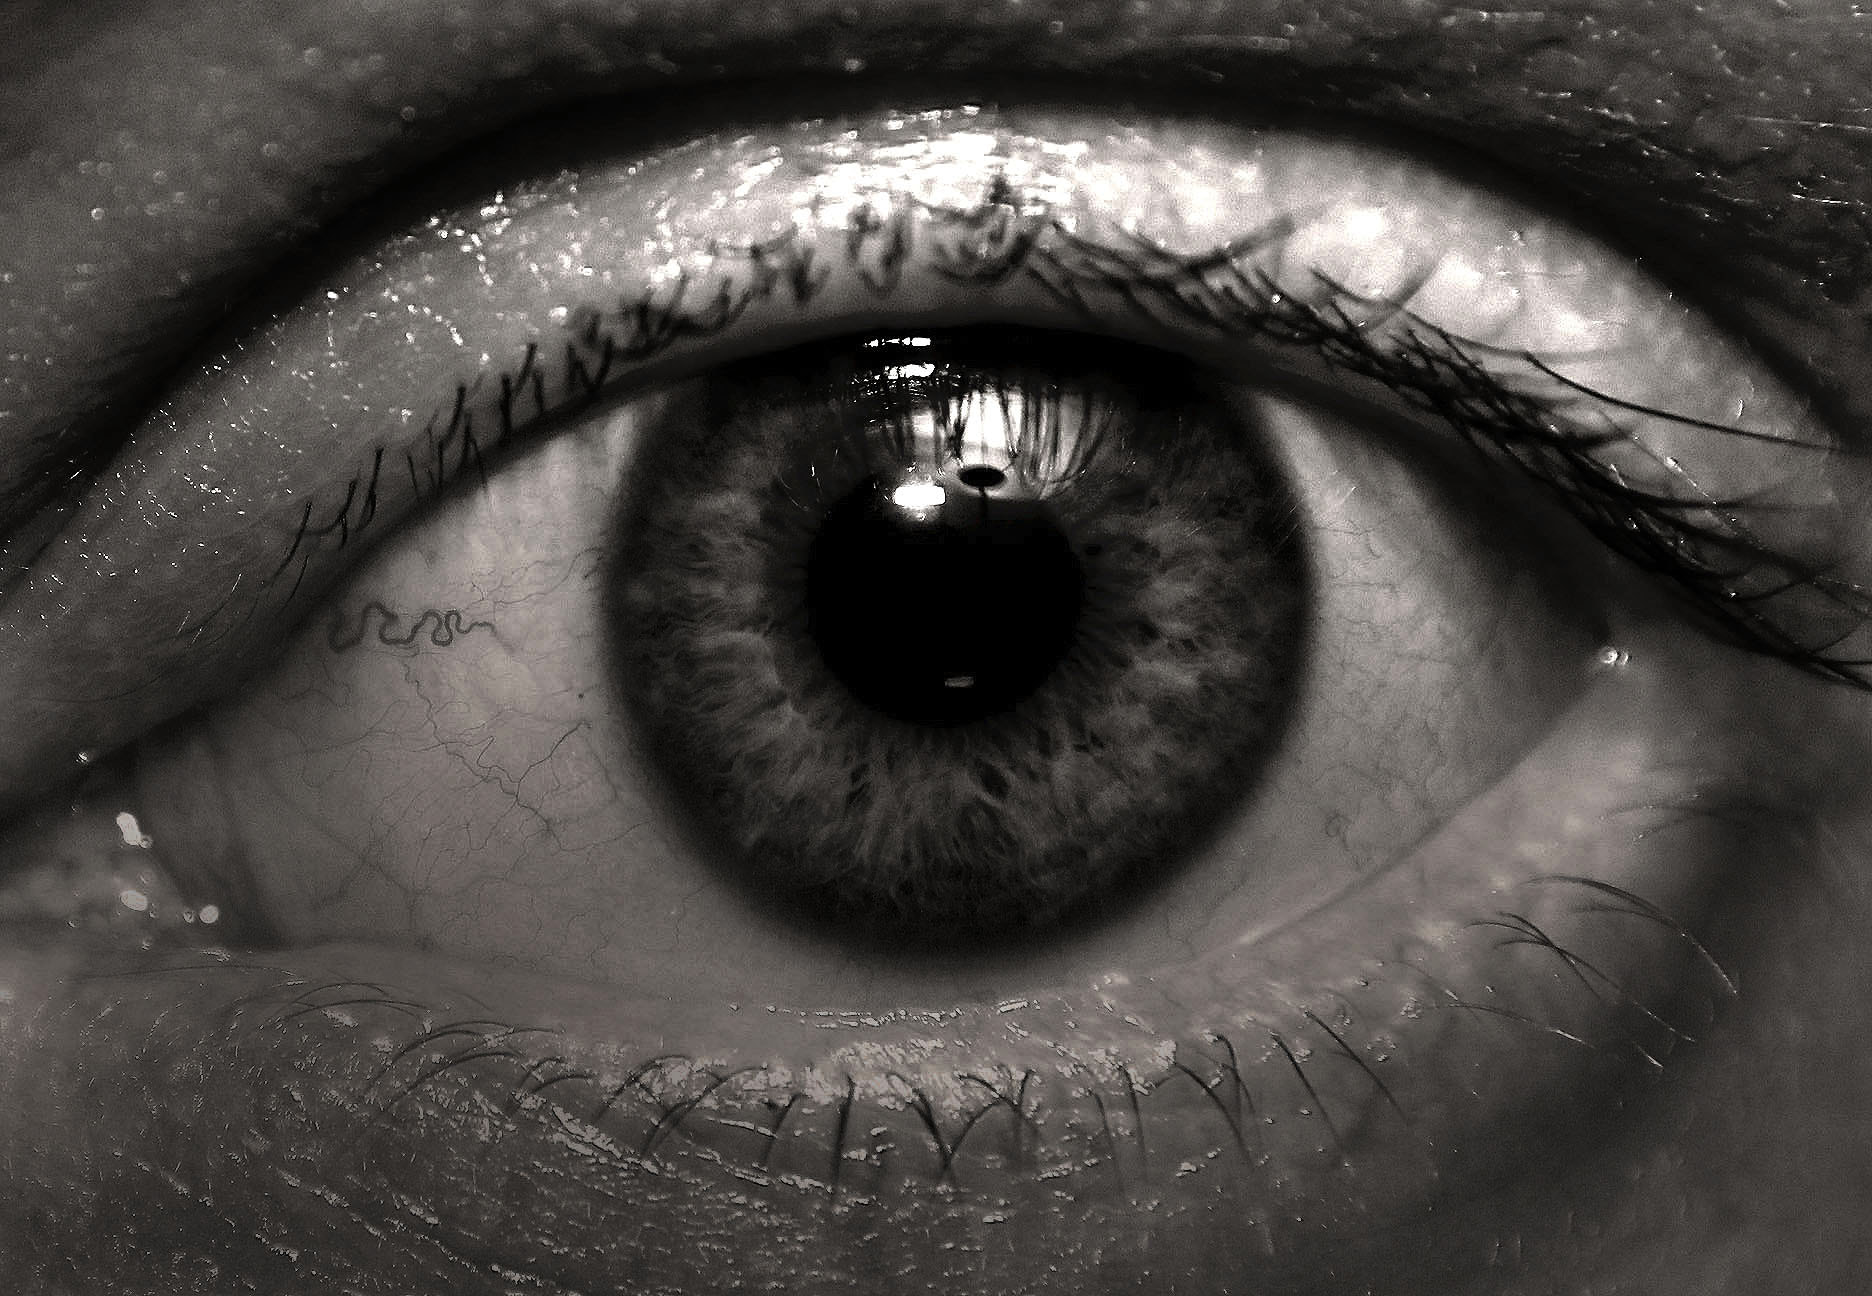 Photograph Eyeball by Stephen Livingston on 500px